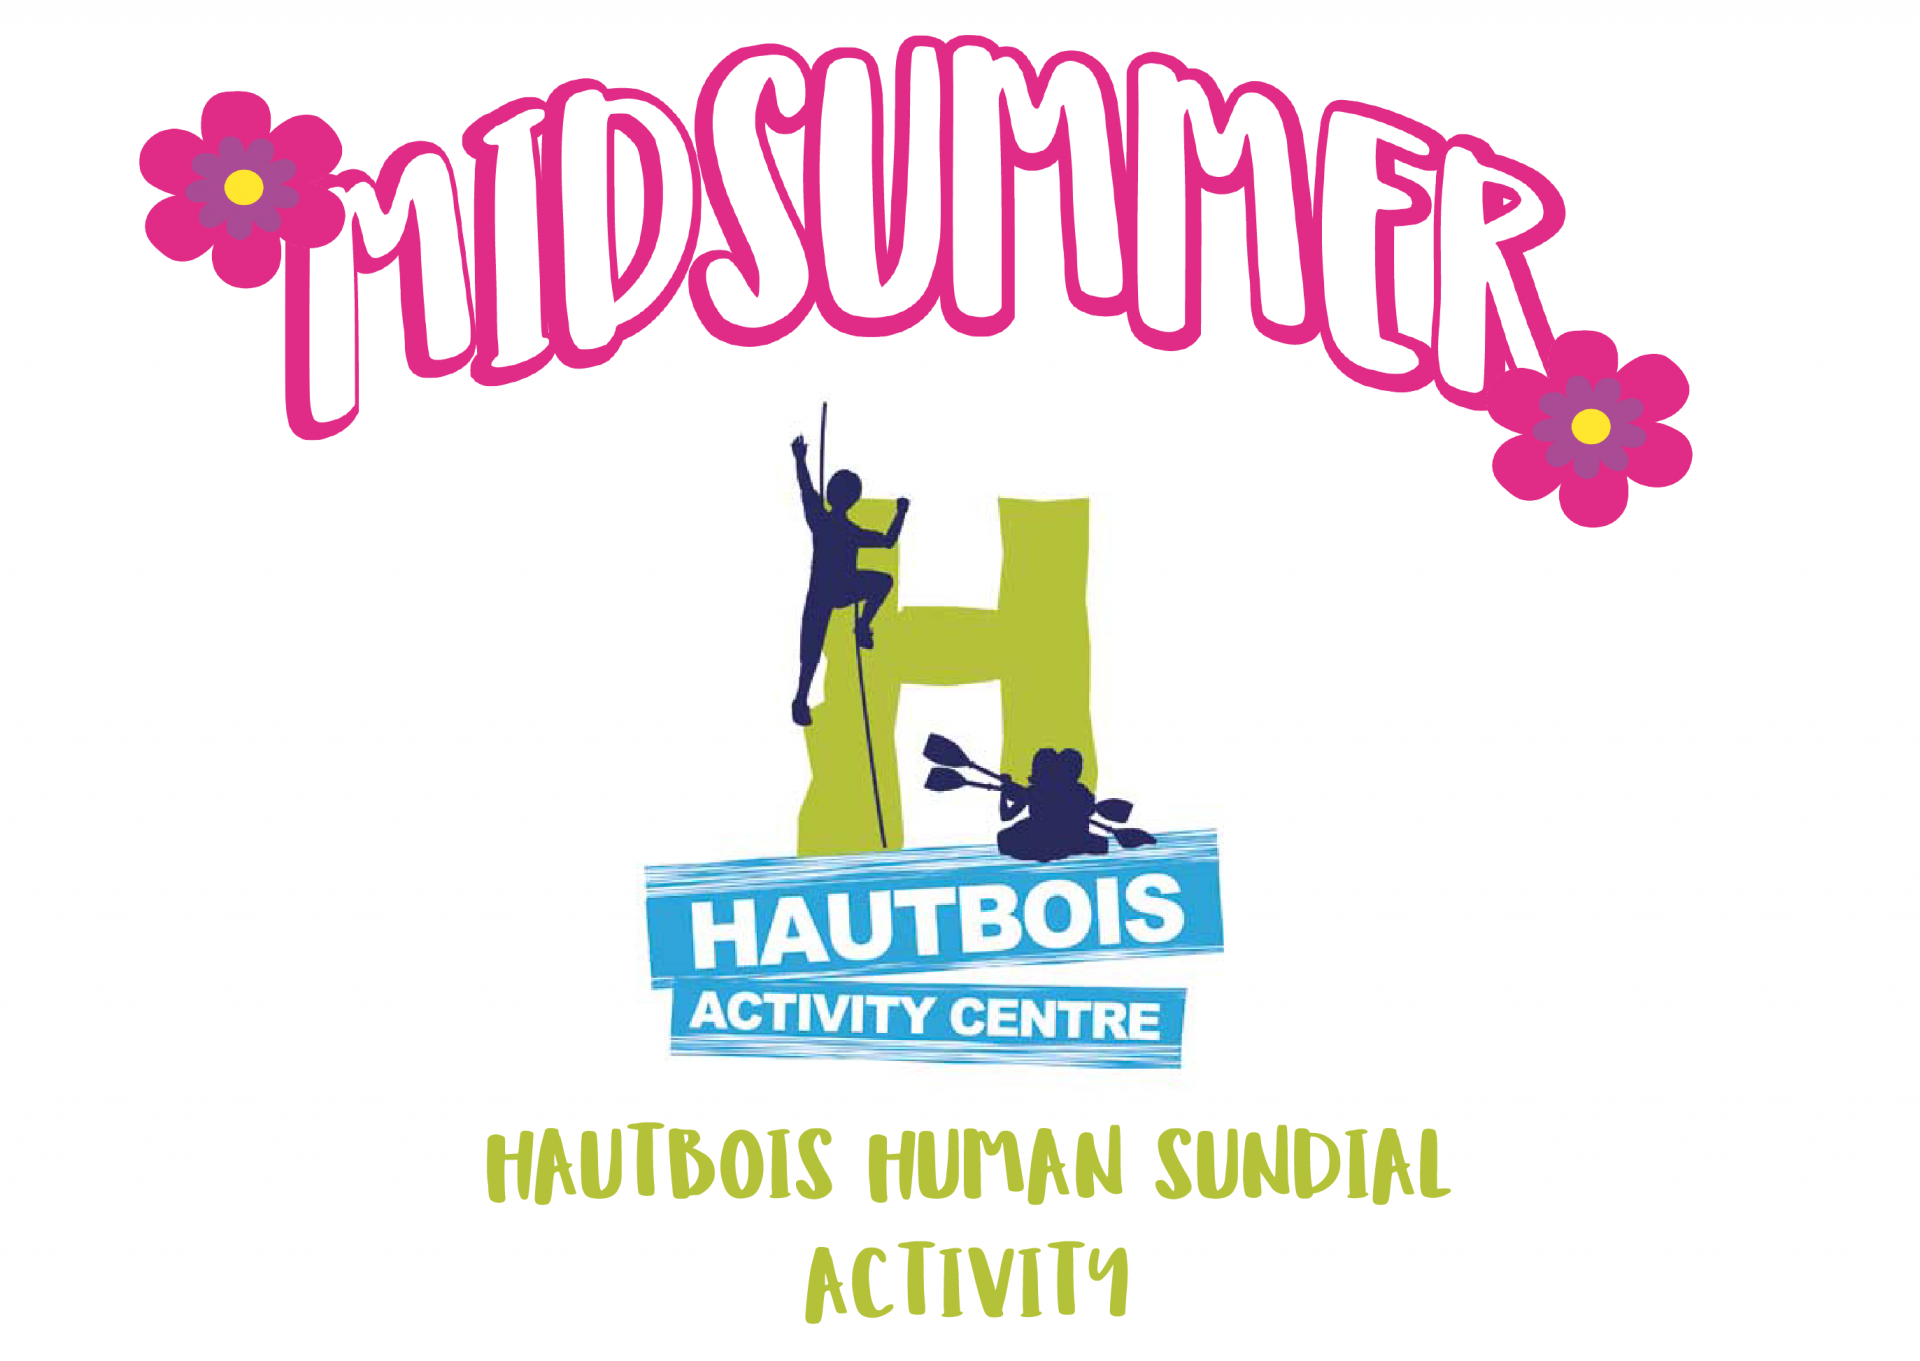 image relating to Hautbois Activity Centre – Human Sundial